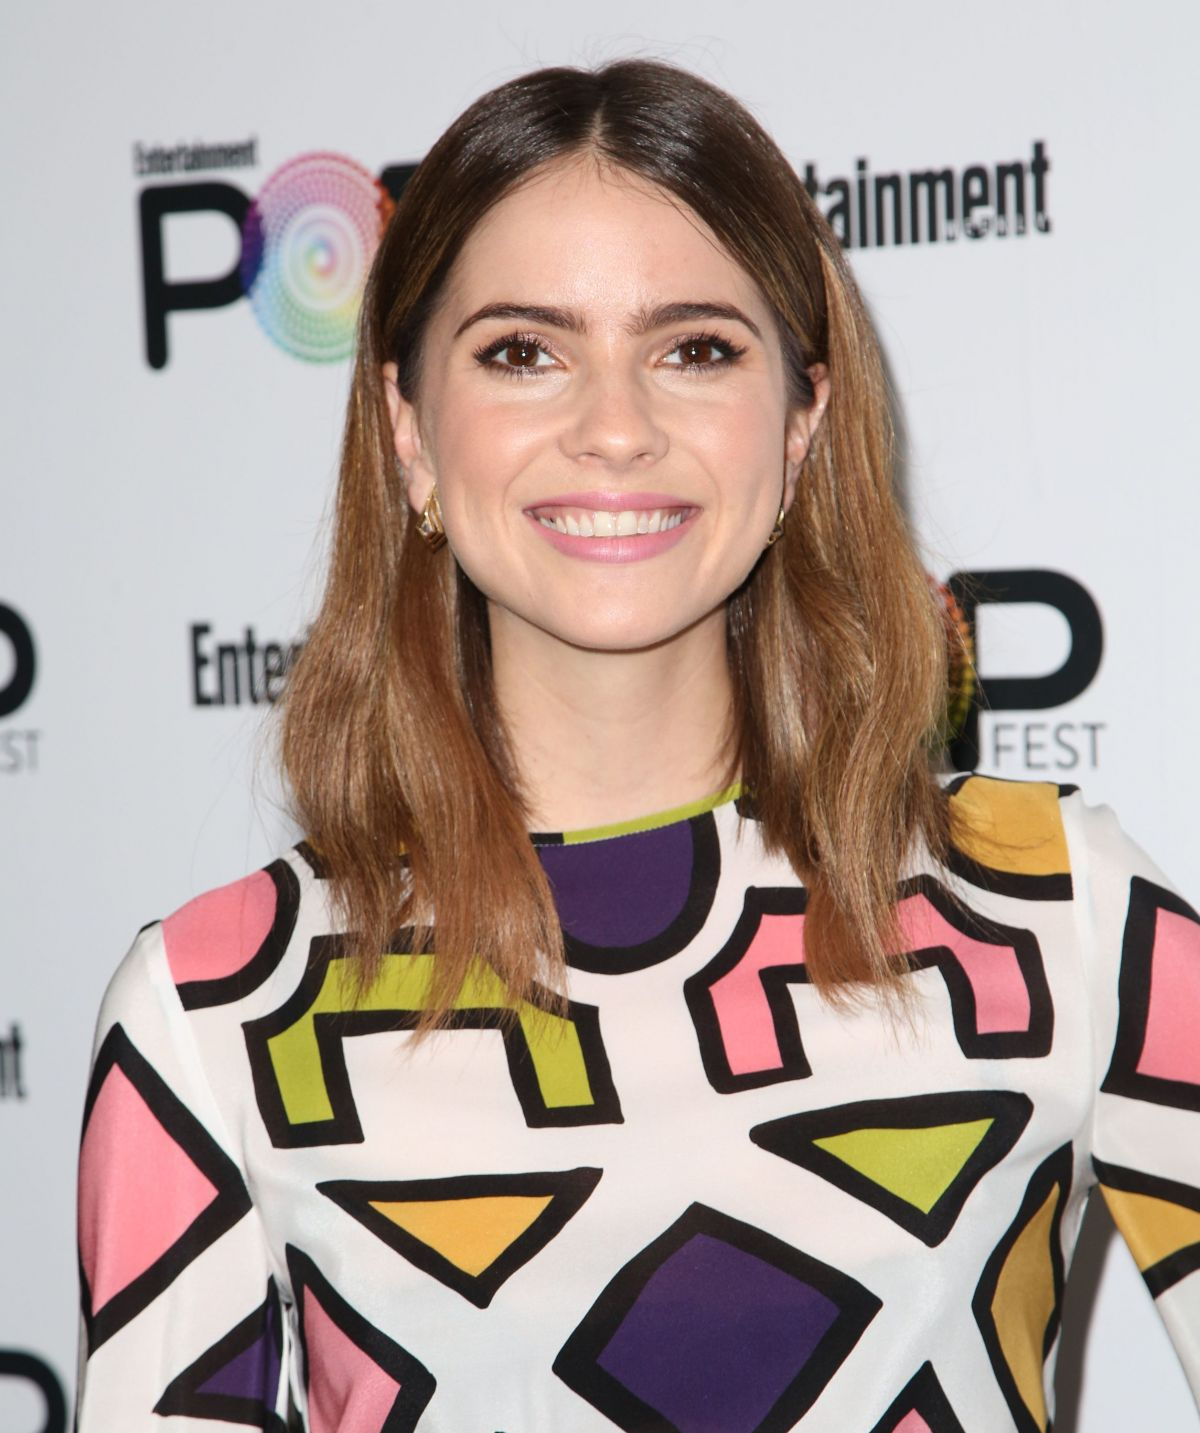 SHELLEY HENNIG at Entertainment Weekly Popfest in Los Angeles 10/29/2016